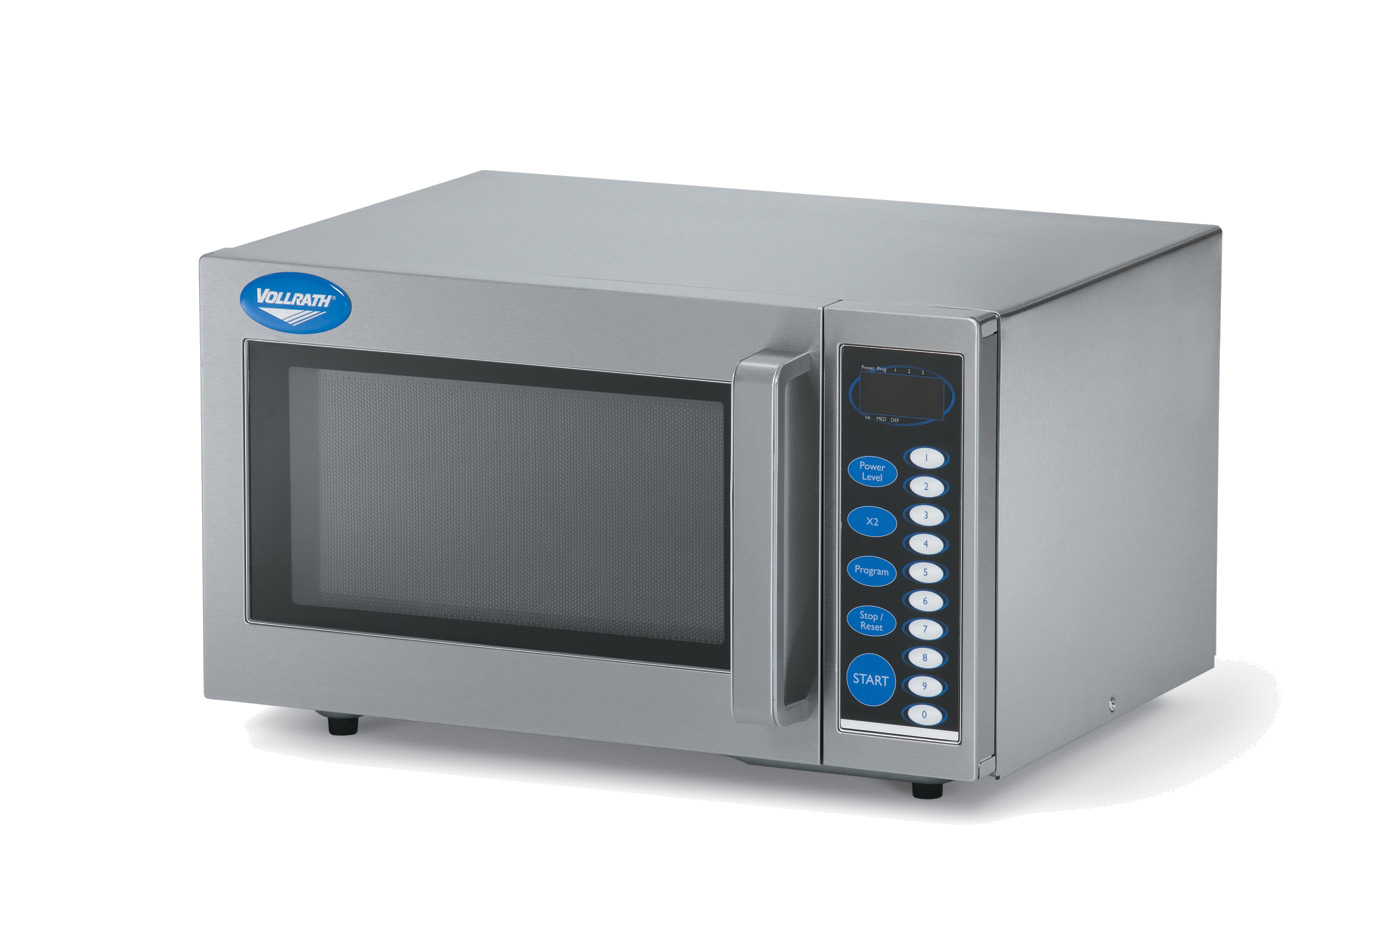 Vollrath 40819 microwave oven